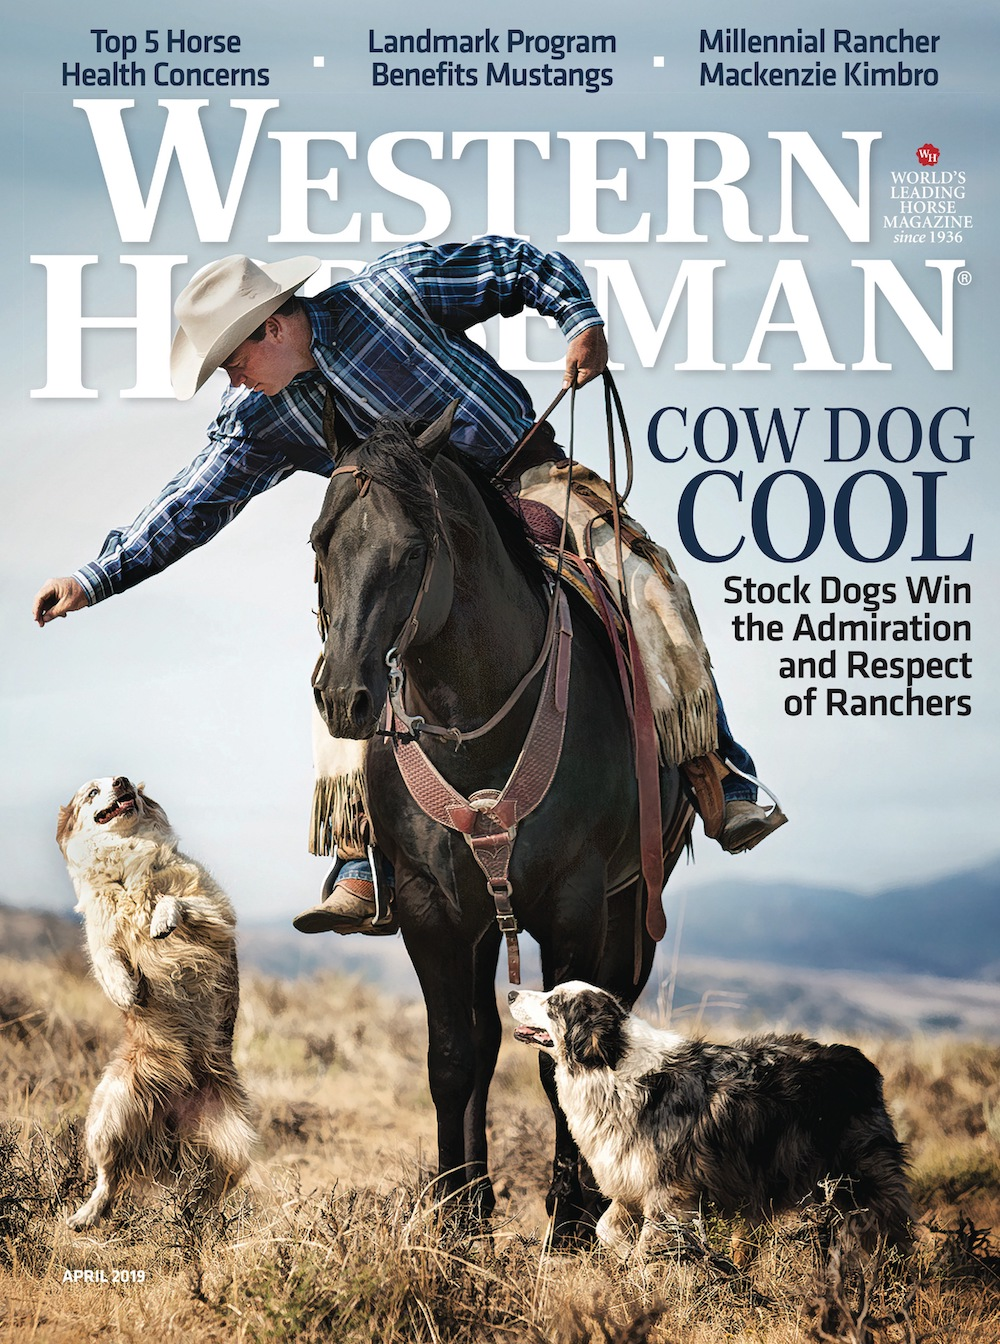 Western Horseman magazine April cover